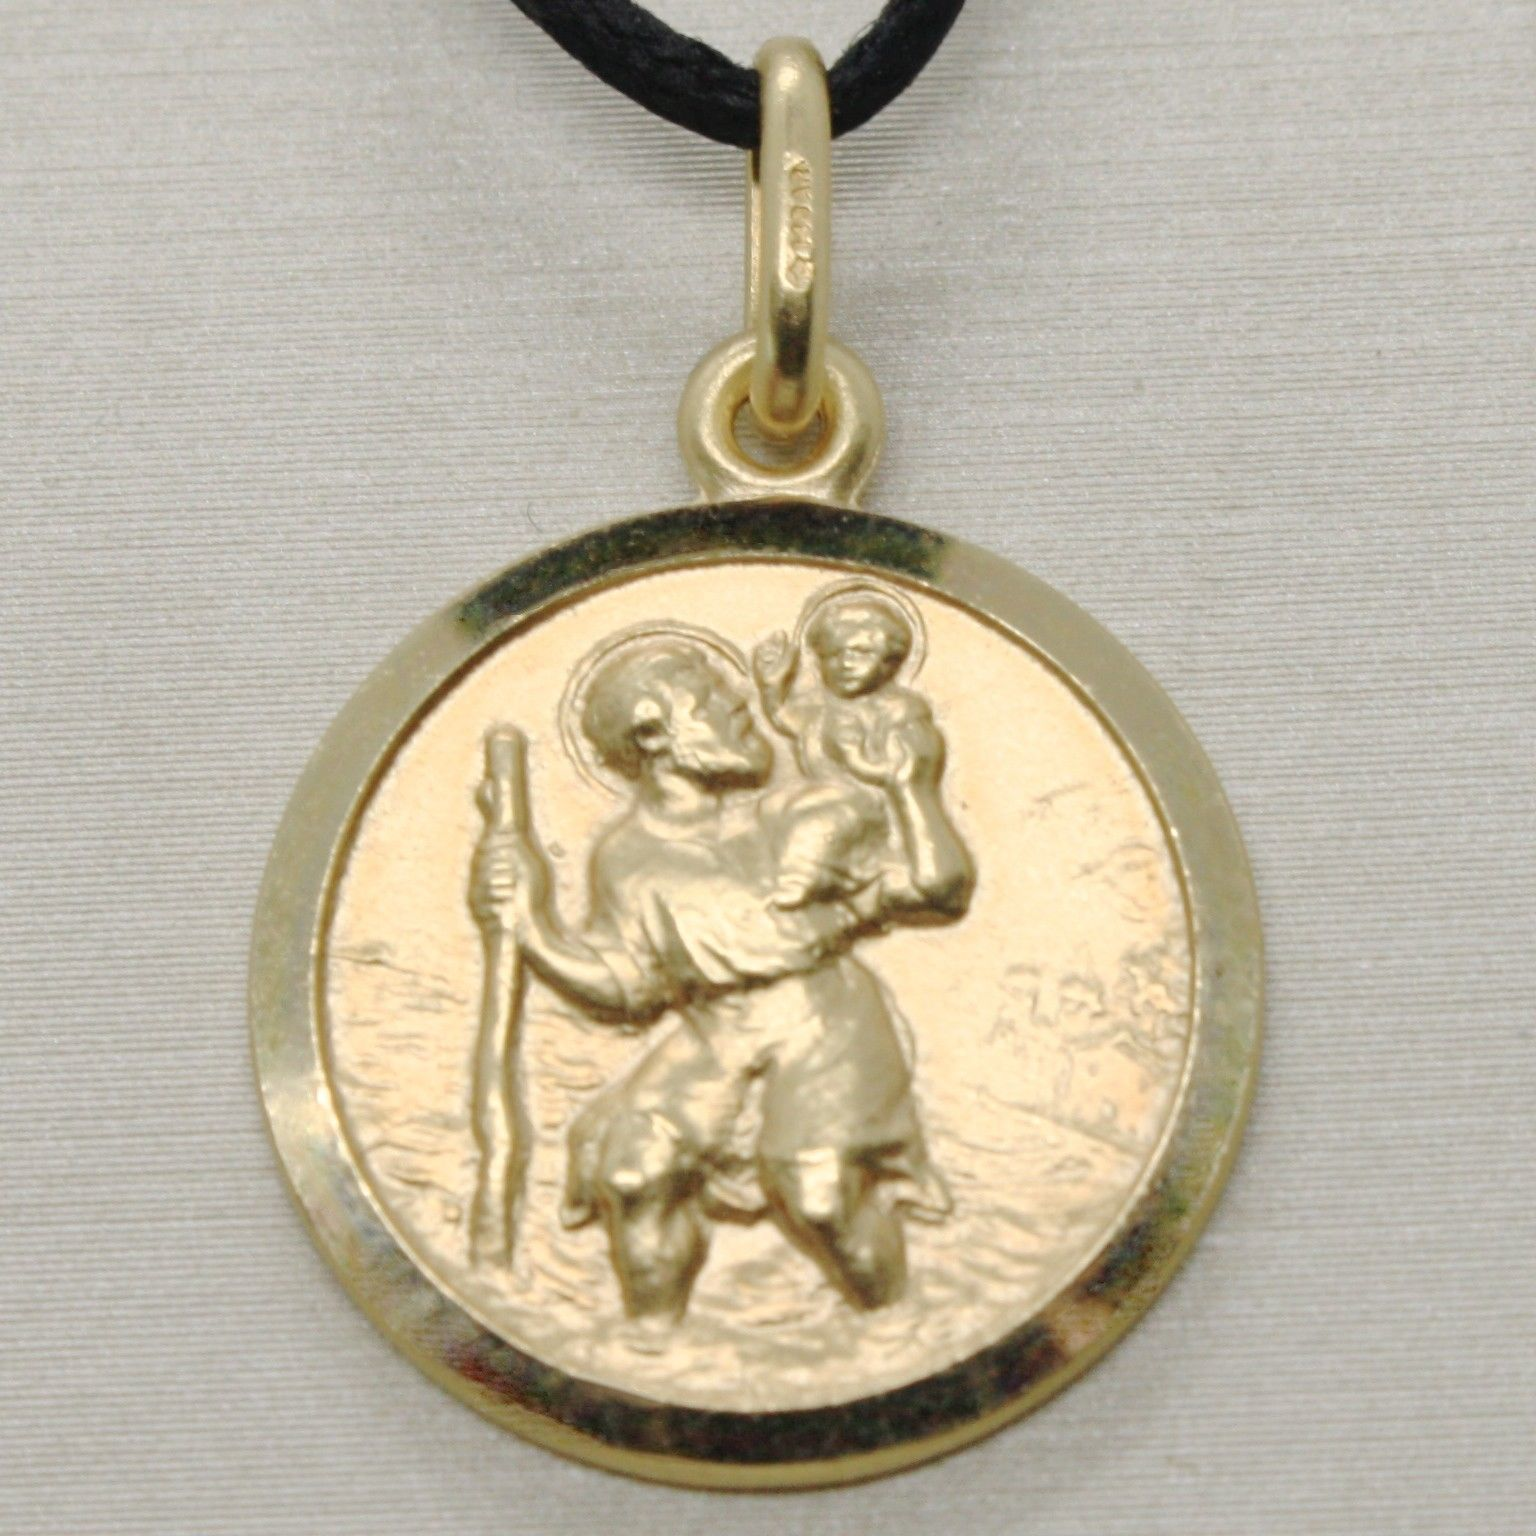 SOLID 18K YELLOW GOLD ST SAINT SANT CRISTOFORO CHRISTOPHER MEDAL DIAMETER 17 MM